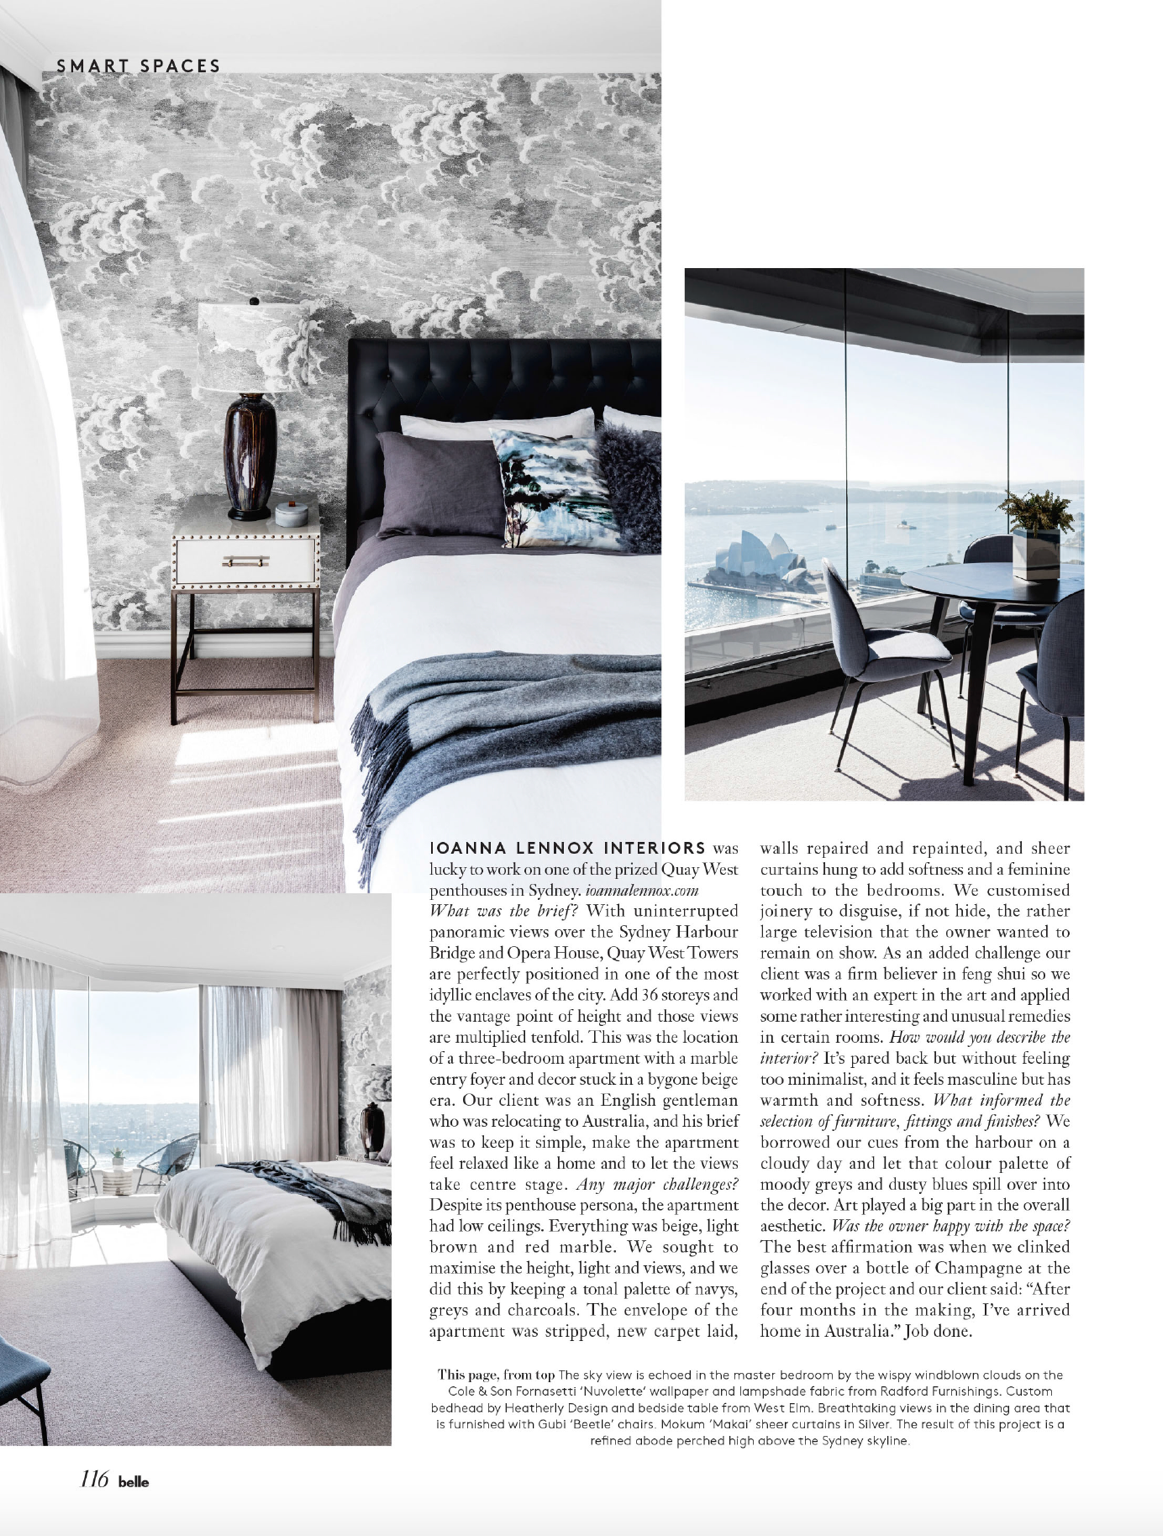 Belle February-March 2018_Smart Spaces_p116.png